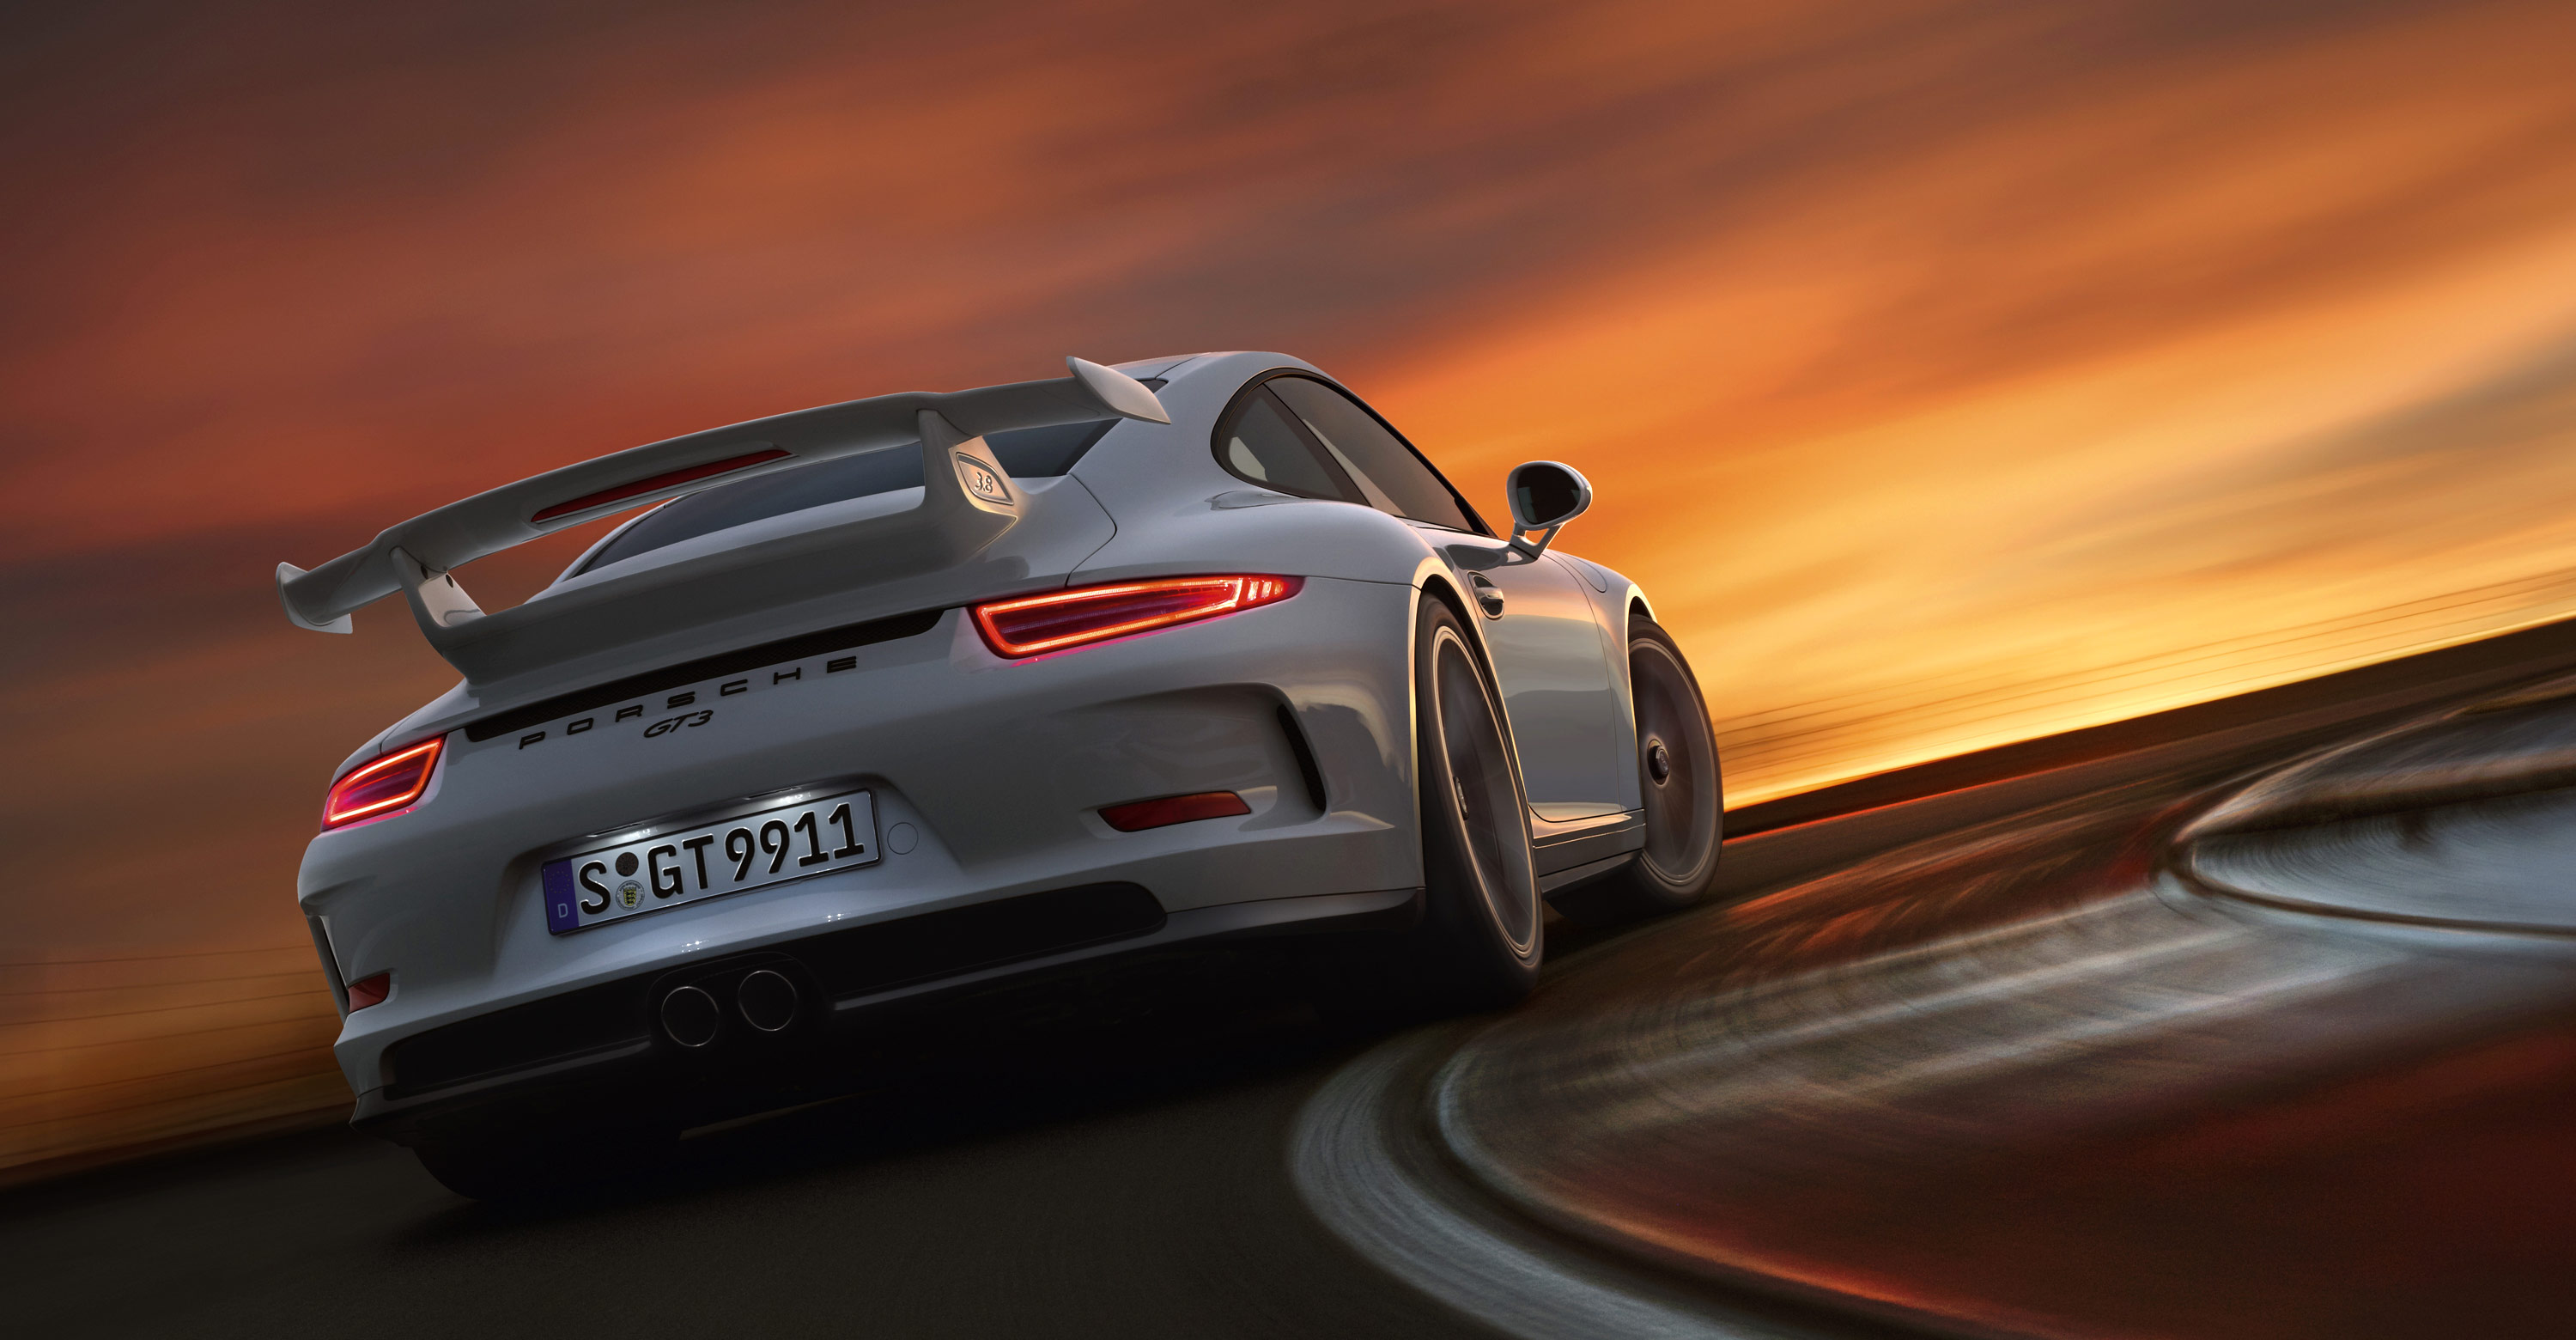 Porsche  Gt In Arctic Silver On Race Track Photographed At High Speed